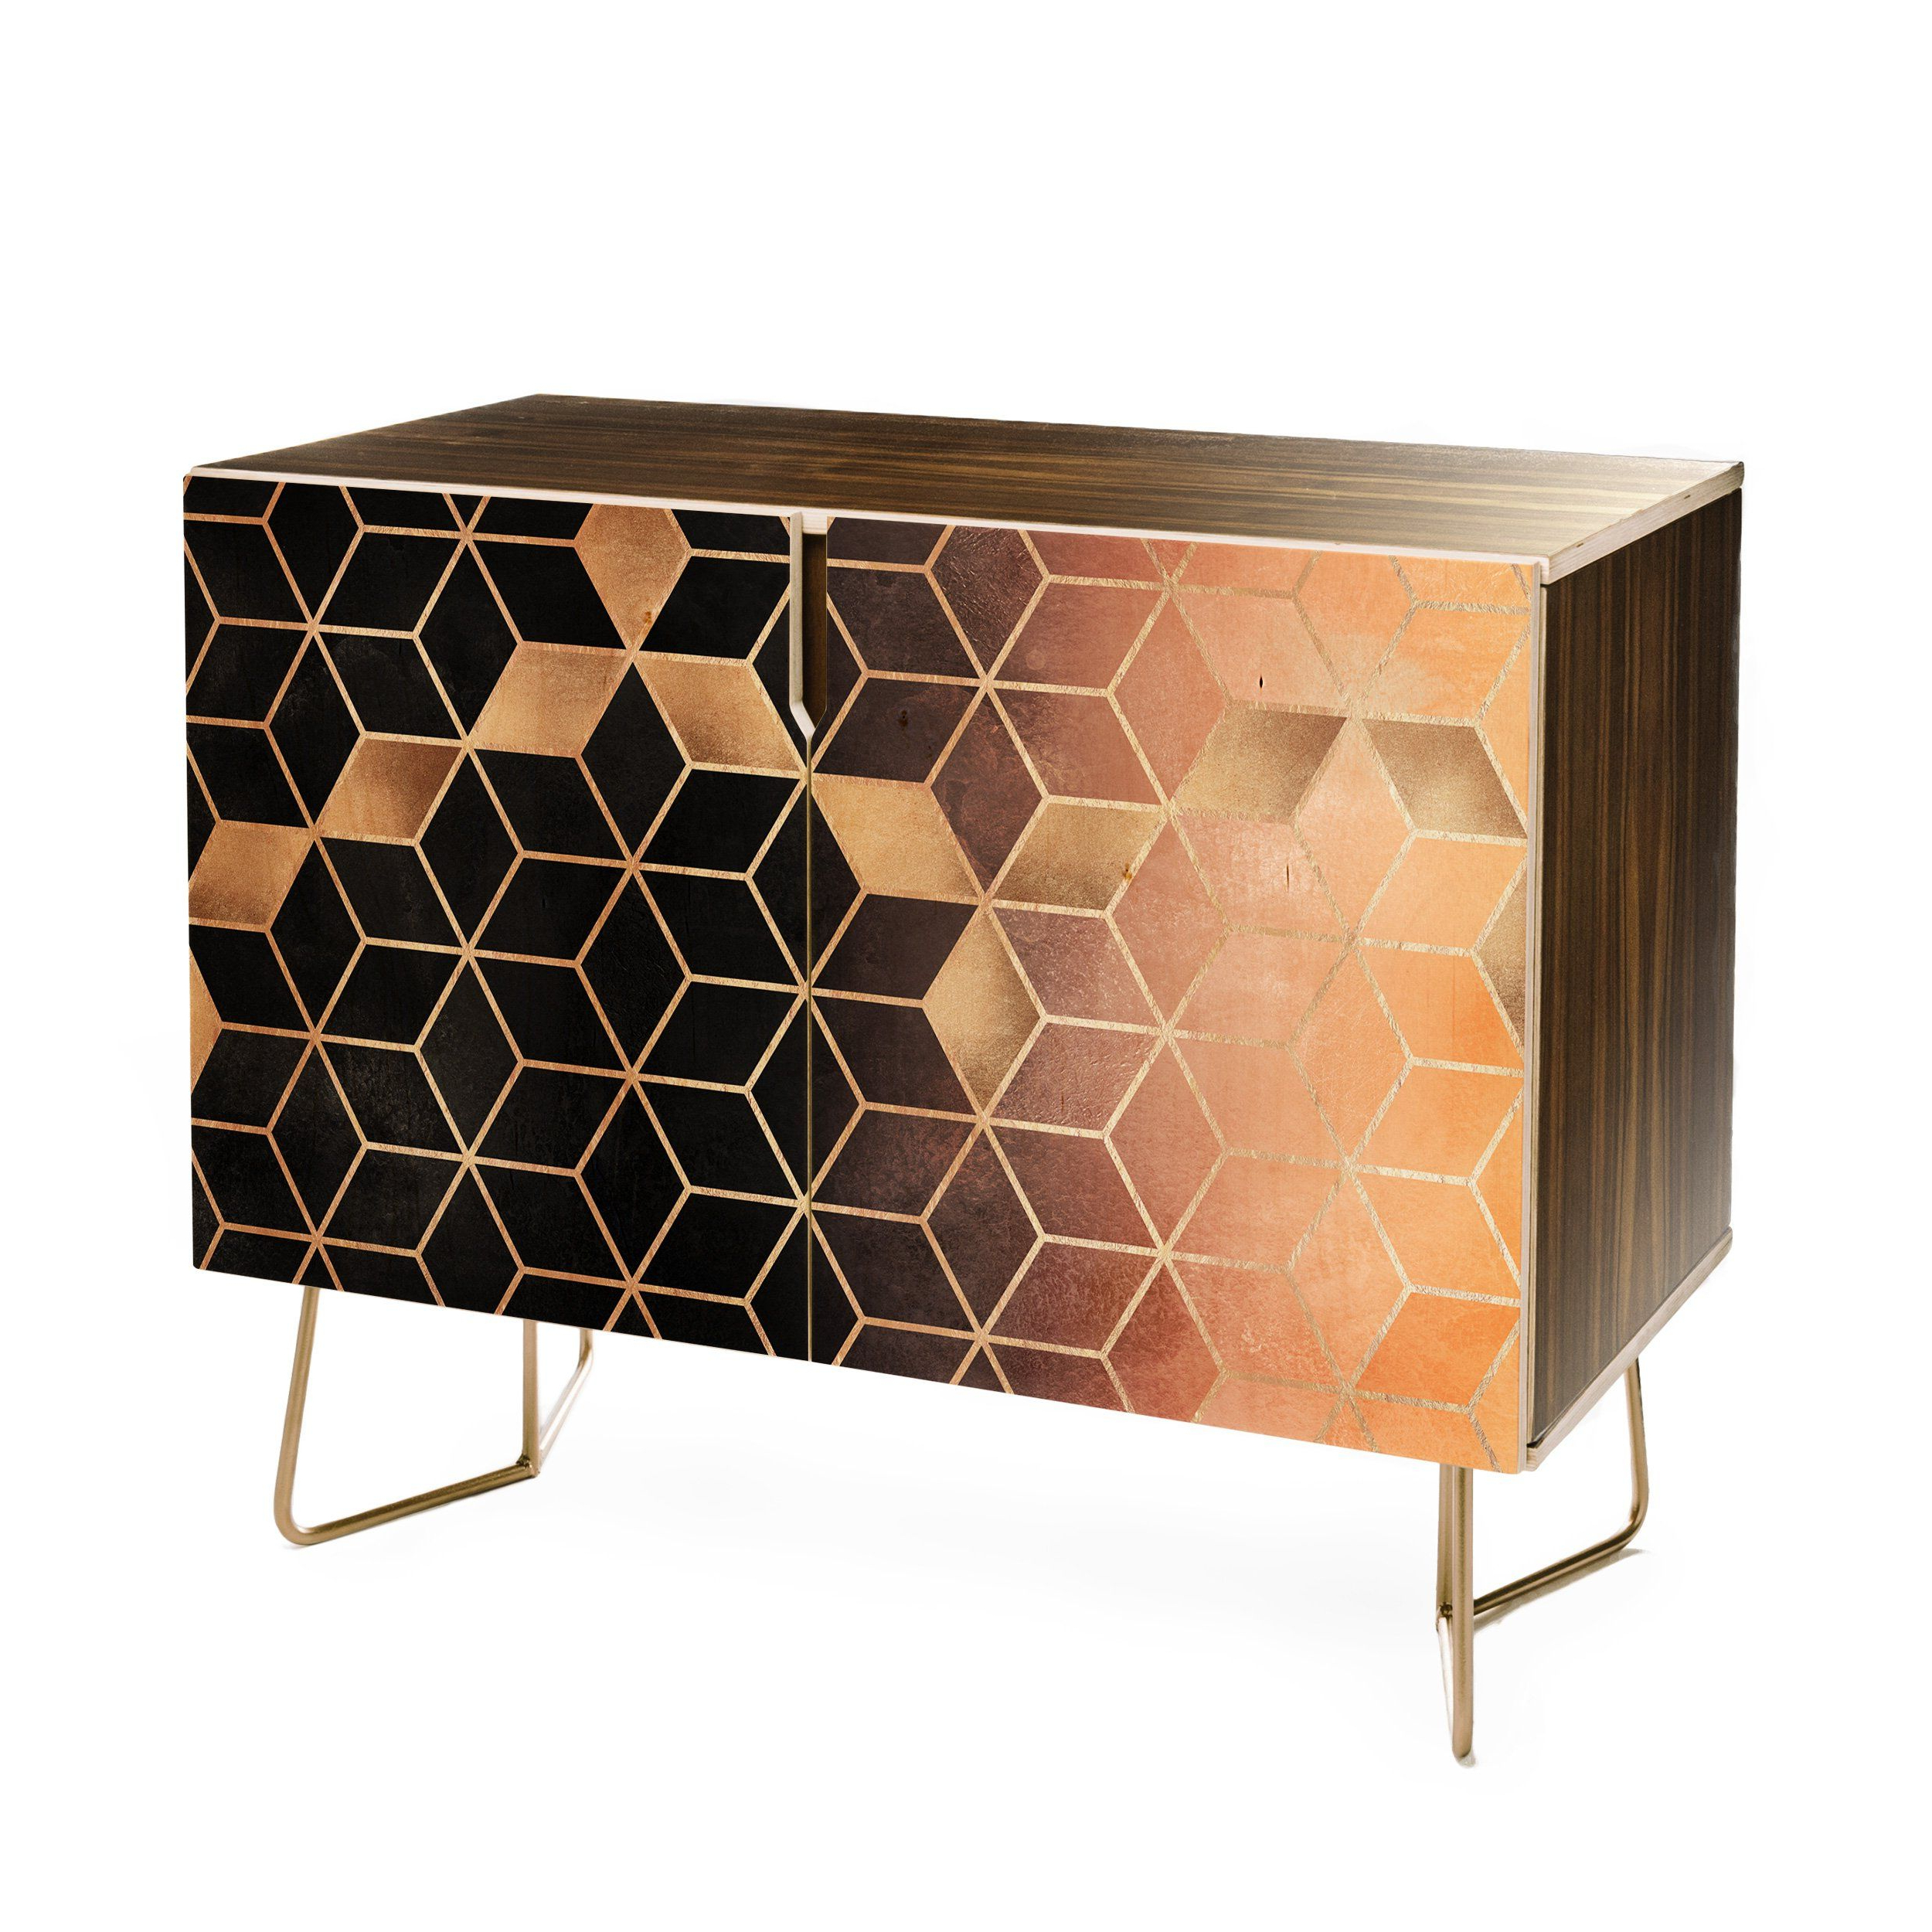 Elisabeth Fredriksson Ombre Cubes Credenza In 2019 Inside Blue Hexagons And Diamonds Credenzas (Gallery 19 of 20)